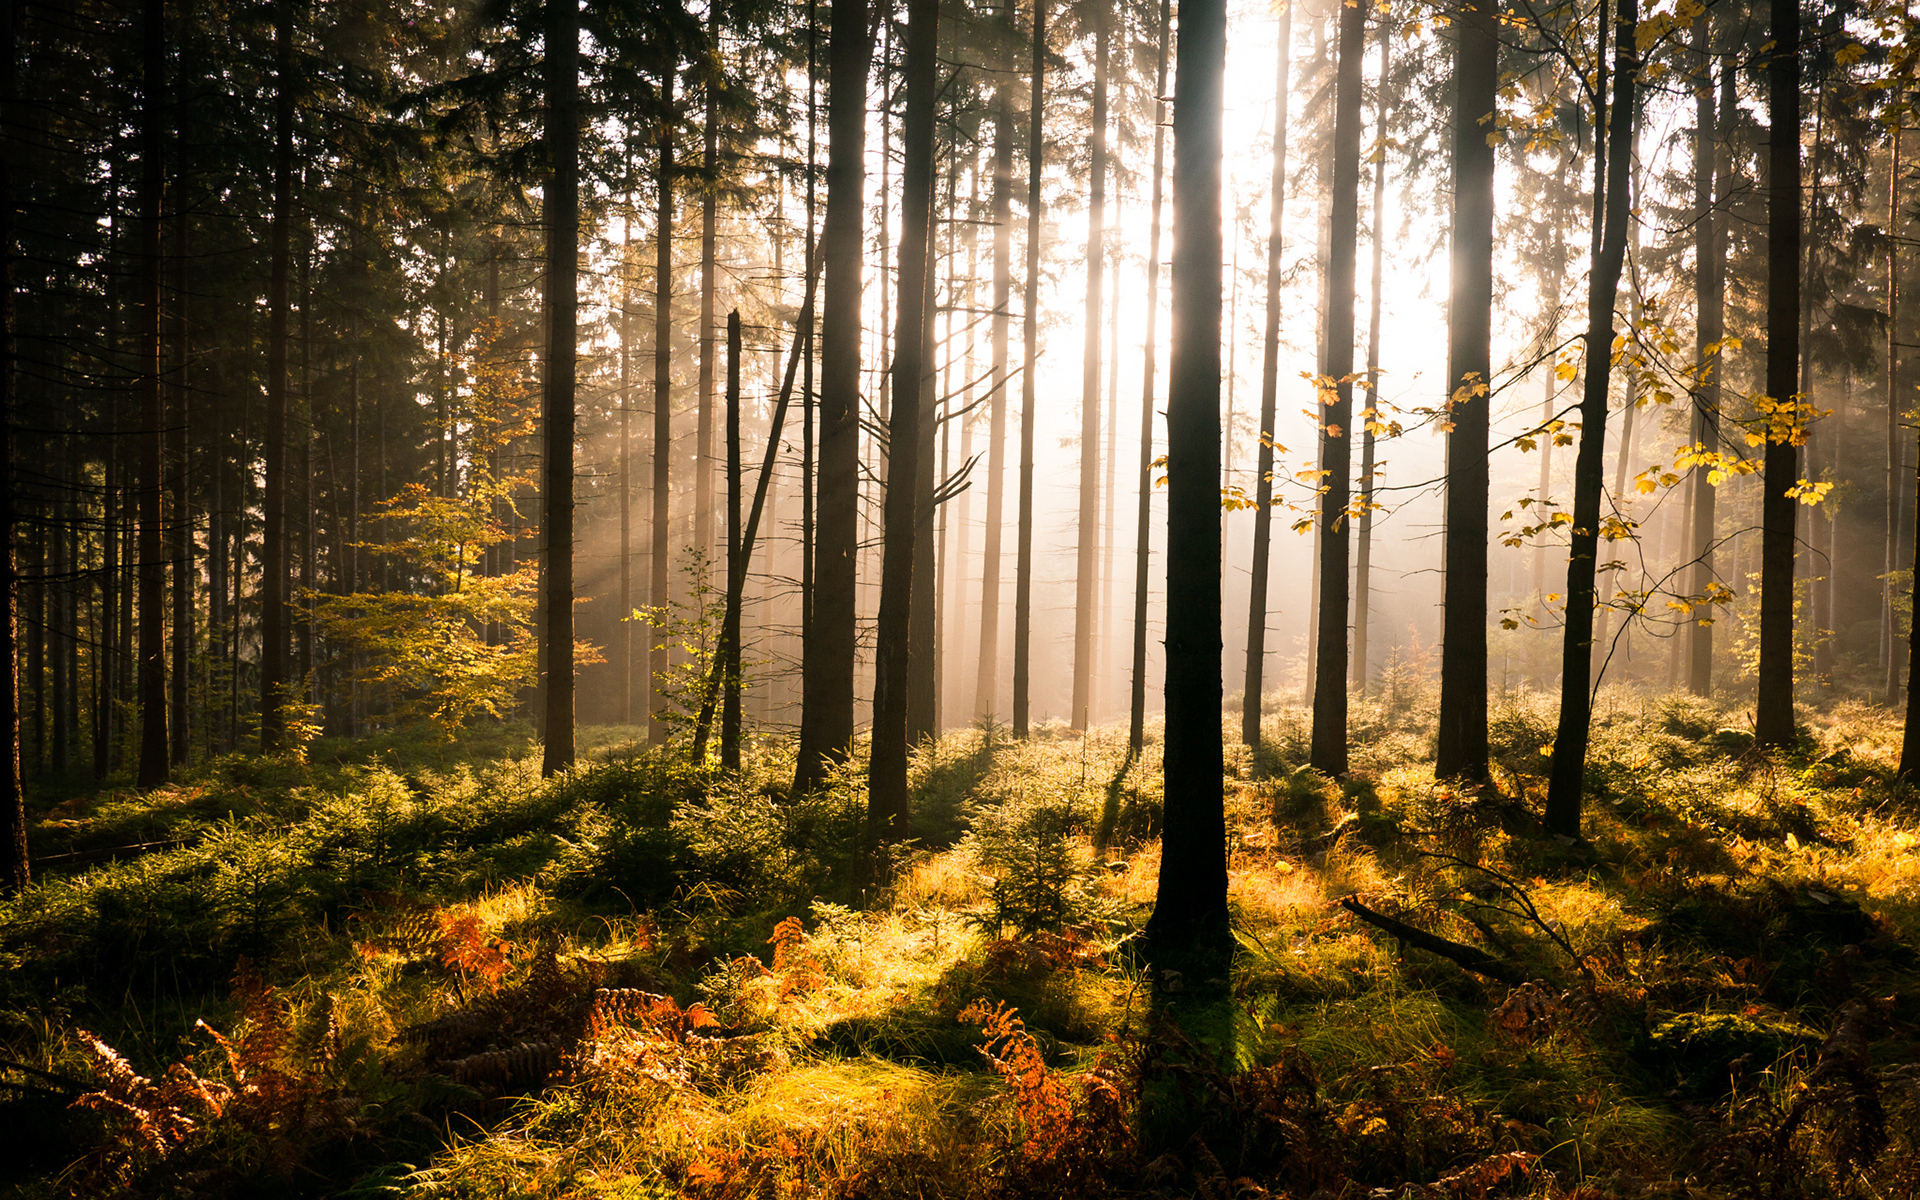 Canvas Hi Beautiful 3d Wallpaper Weekly Wallpaper Take A Walk Through The Forest